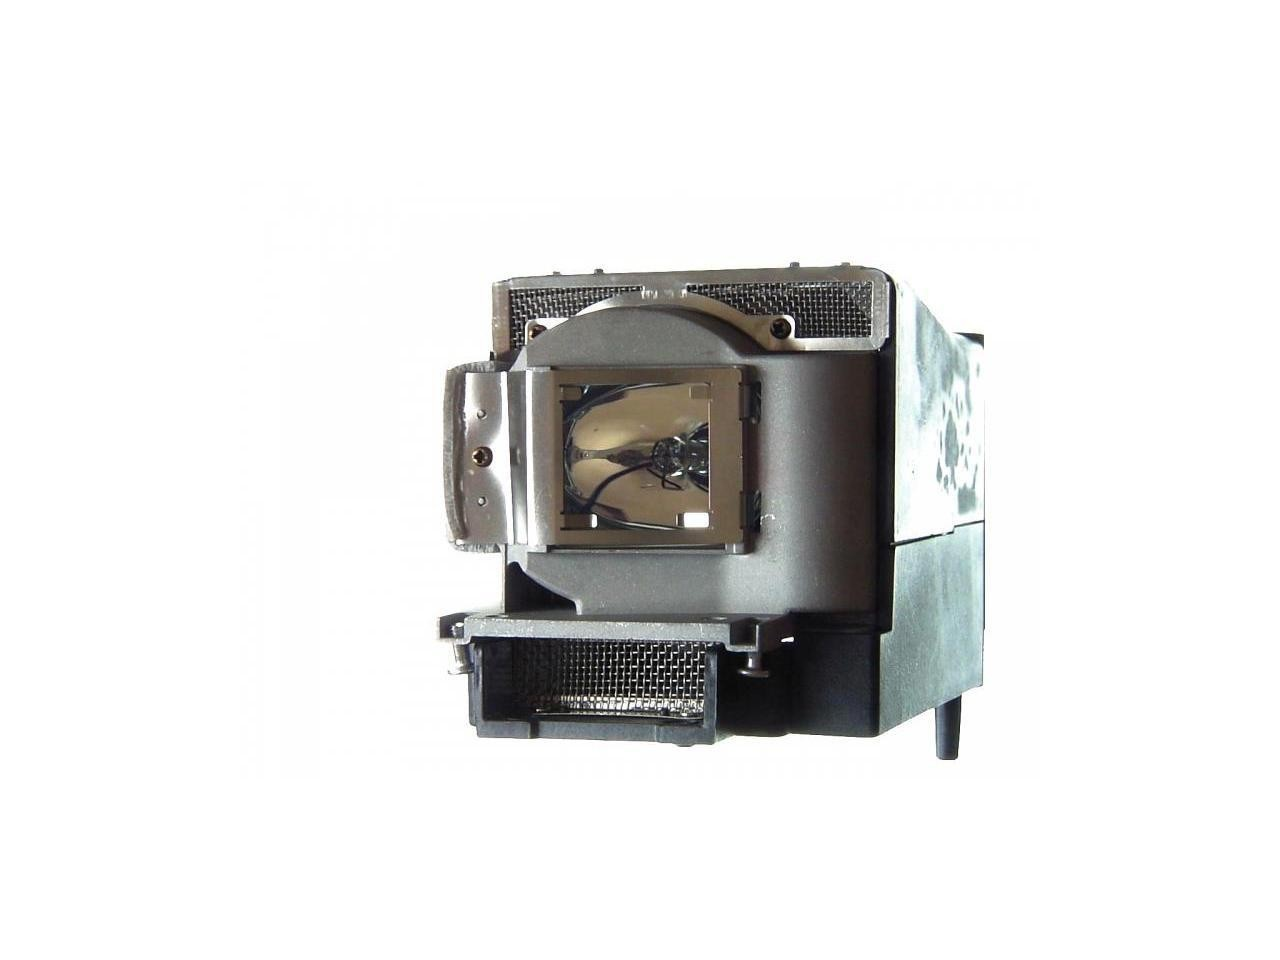 Diamond Lamps 230W Projector Lamp For Mitsubishi XD250U XD280U VLT-XD280LP-DL